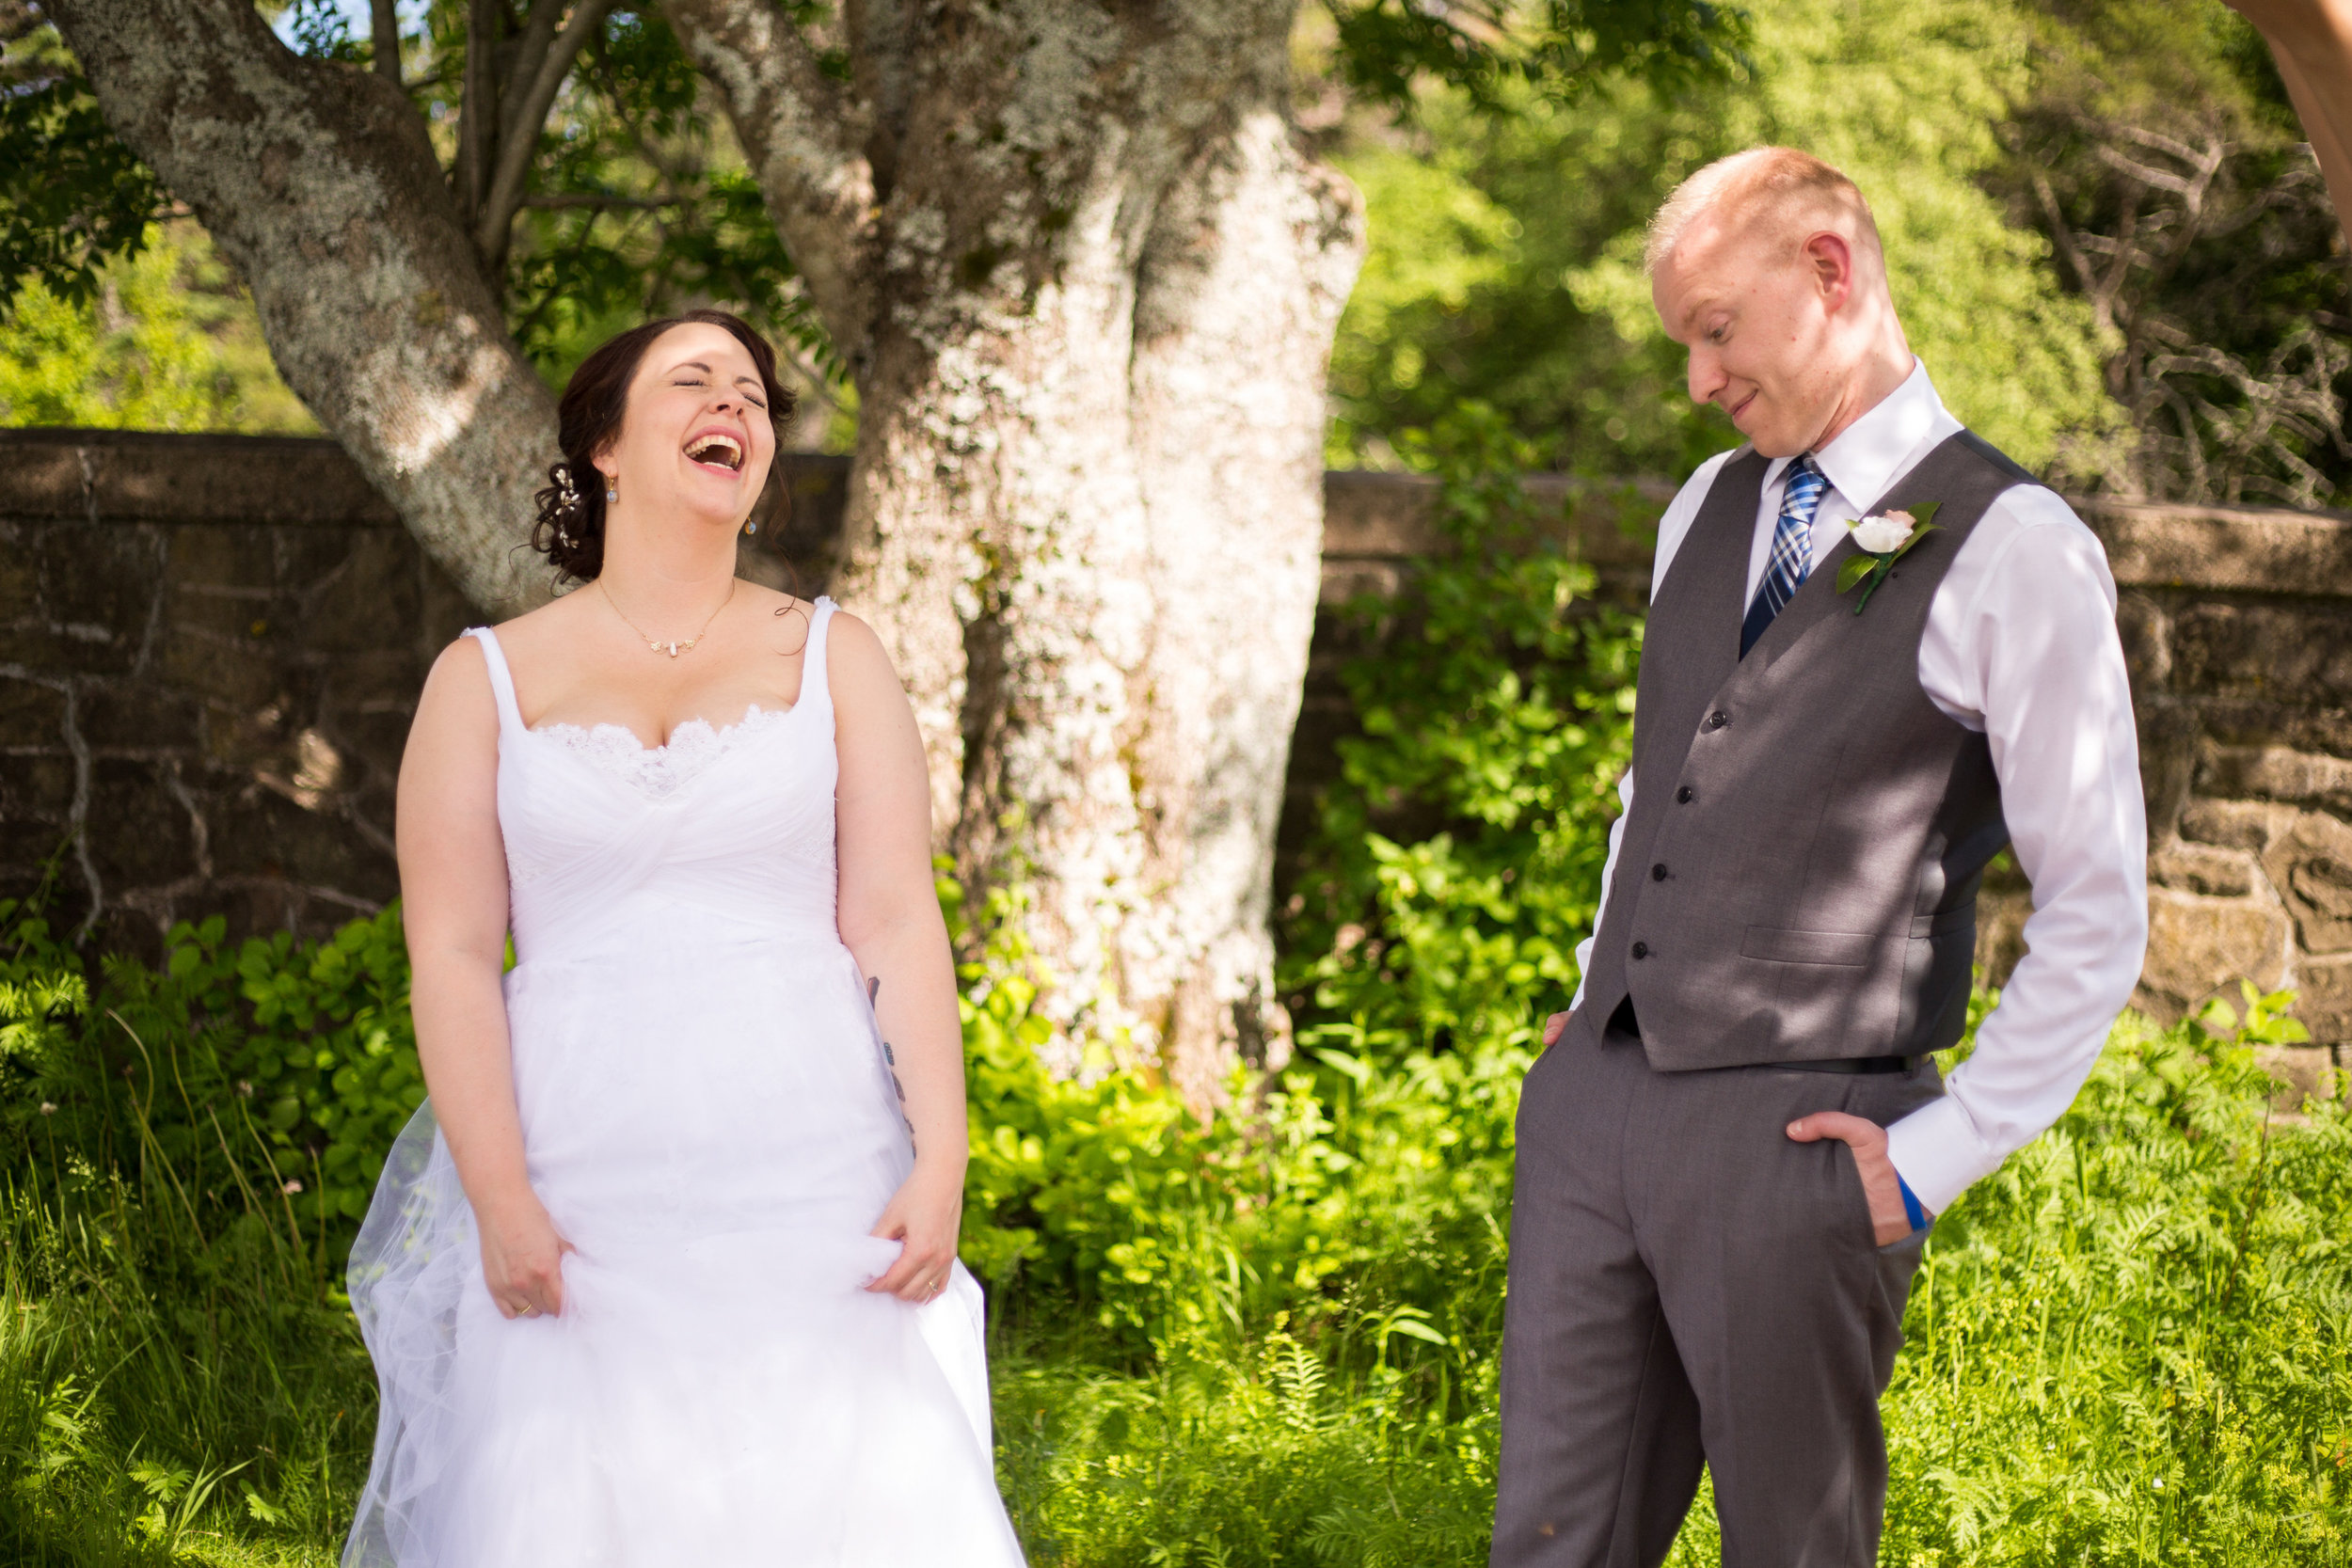 moncton_wedding_photographer_caro_photo-49.jpg